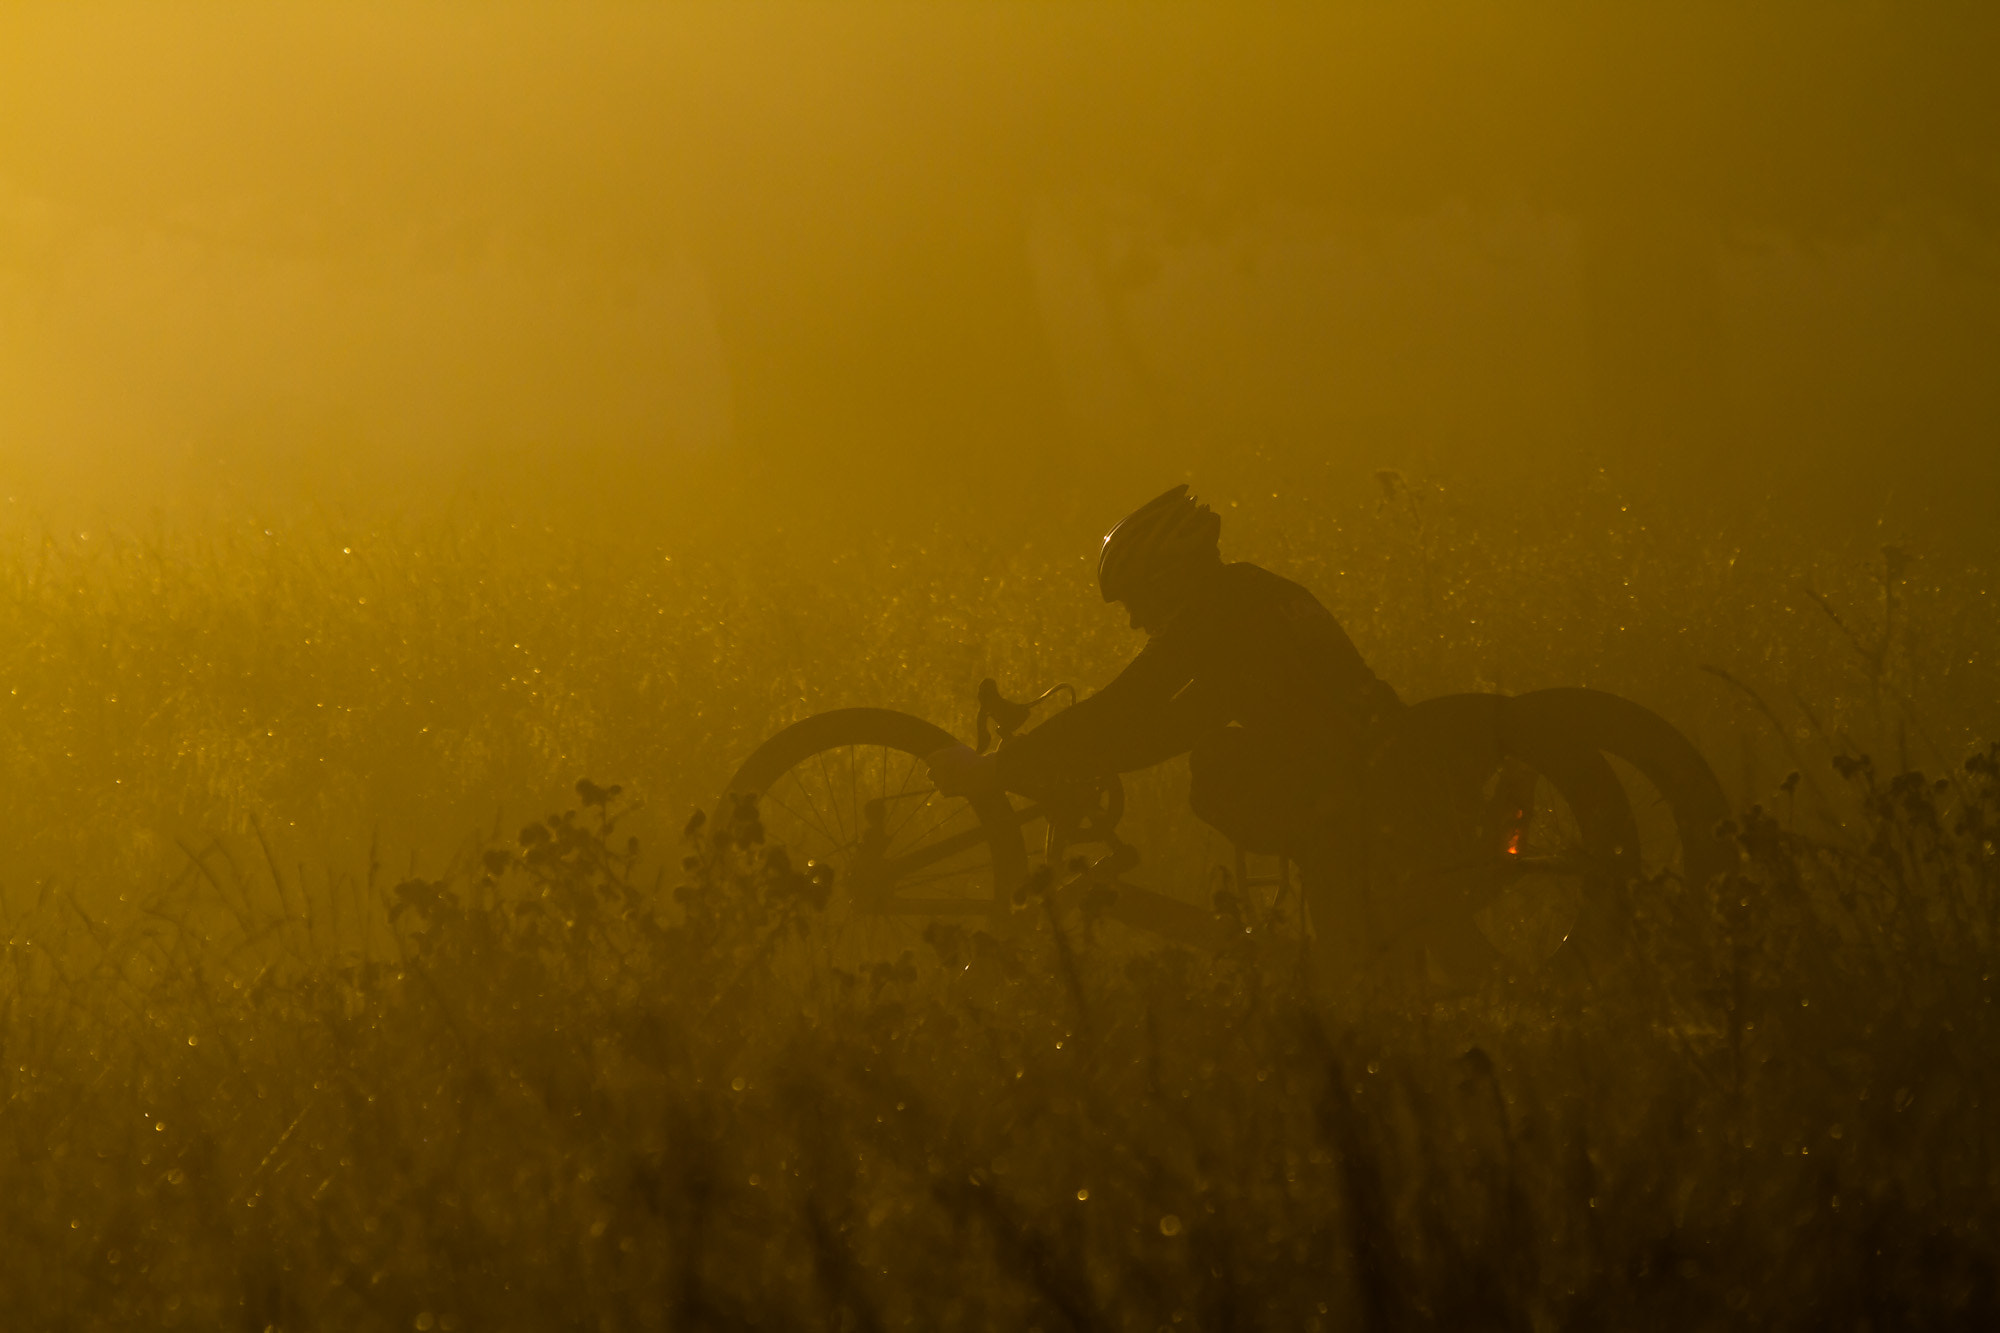 Photograph Ride through the Fog by Steve Bryson on 500px